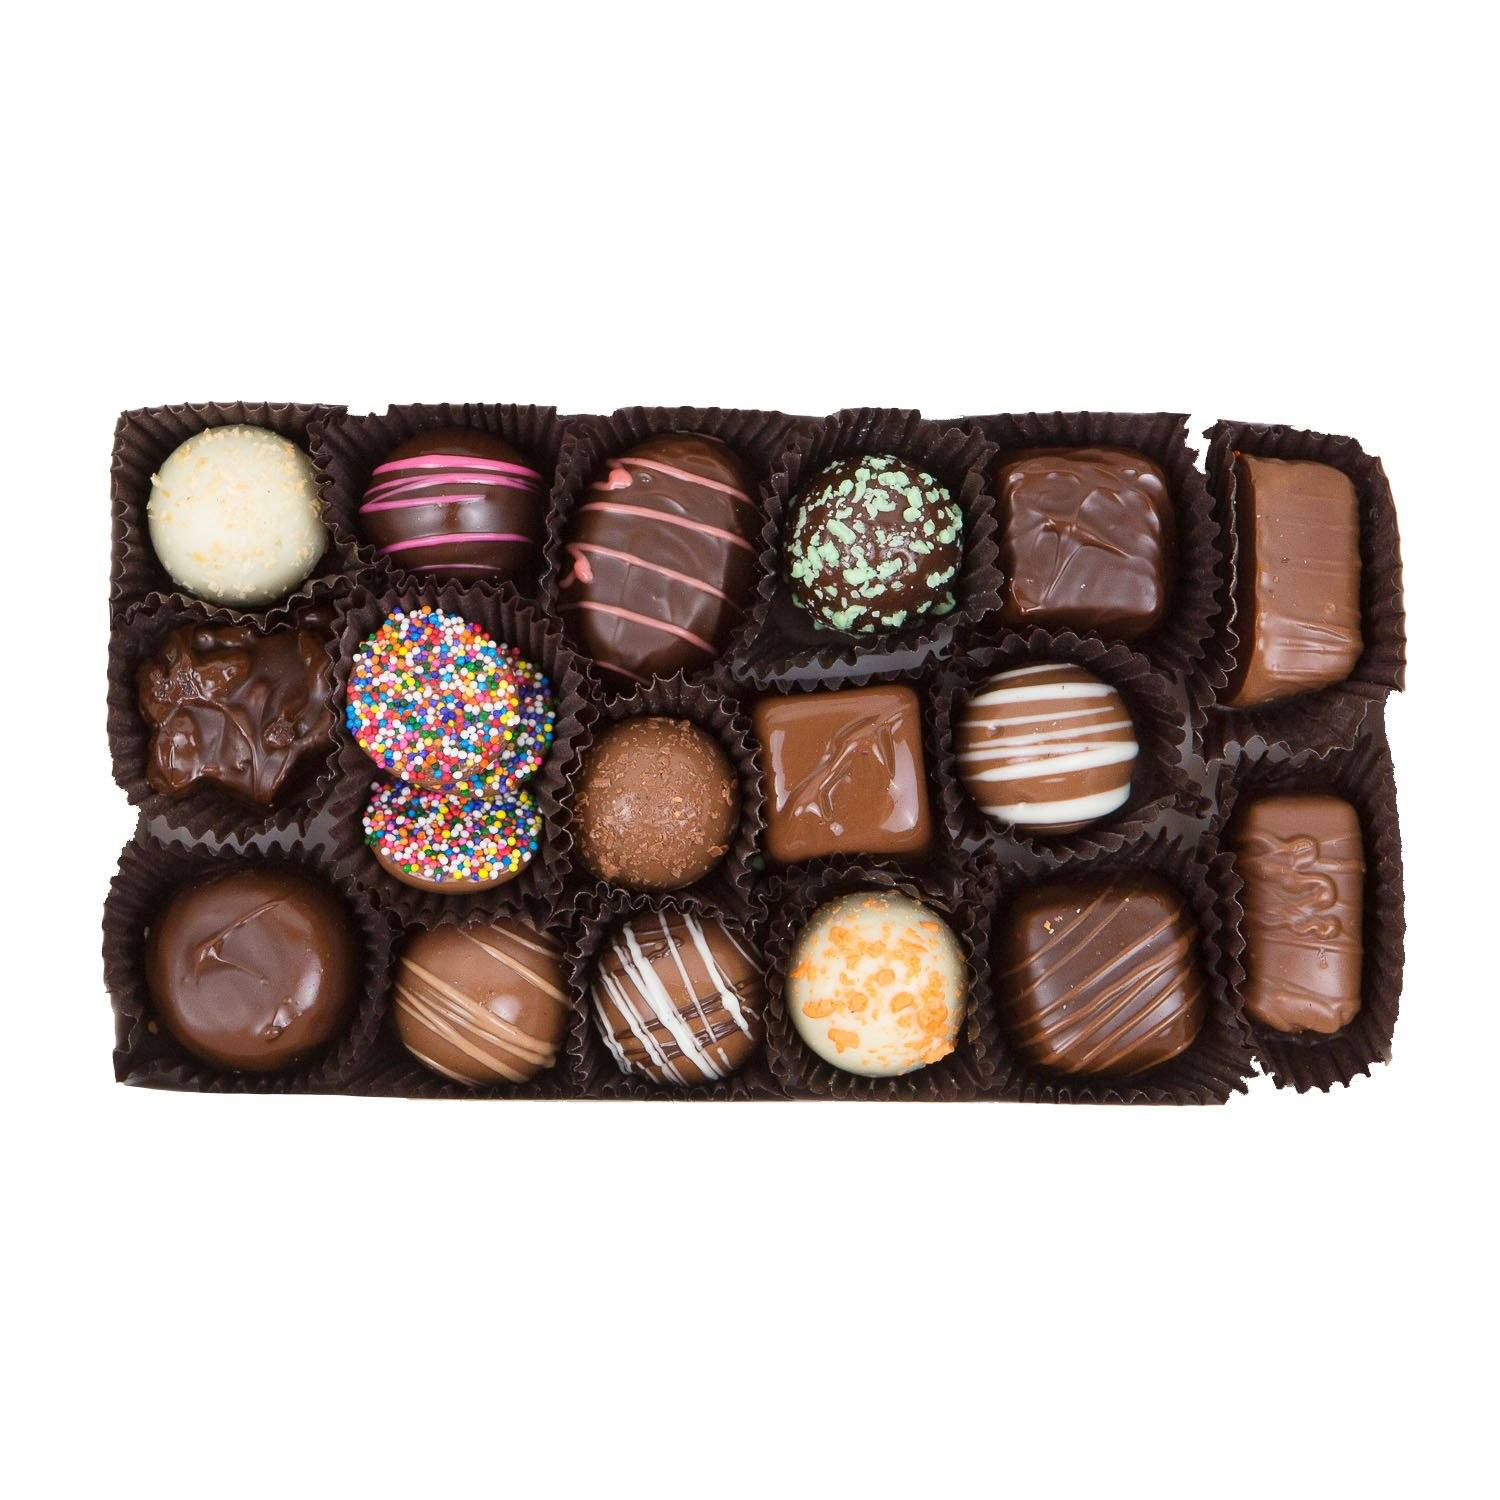 Gift Ideas for Daughter in Law - Assorted Chocolate Gift Box - Jackie's Chocolate (1487130198051)